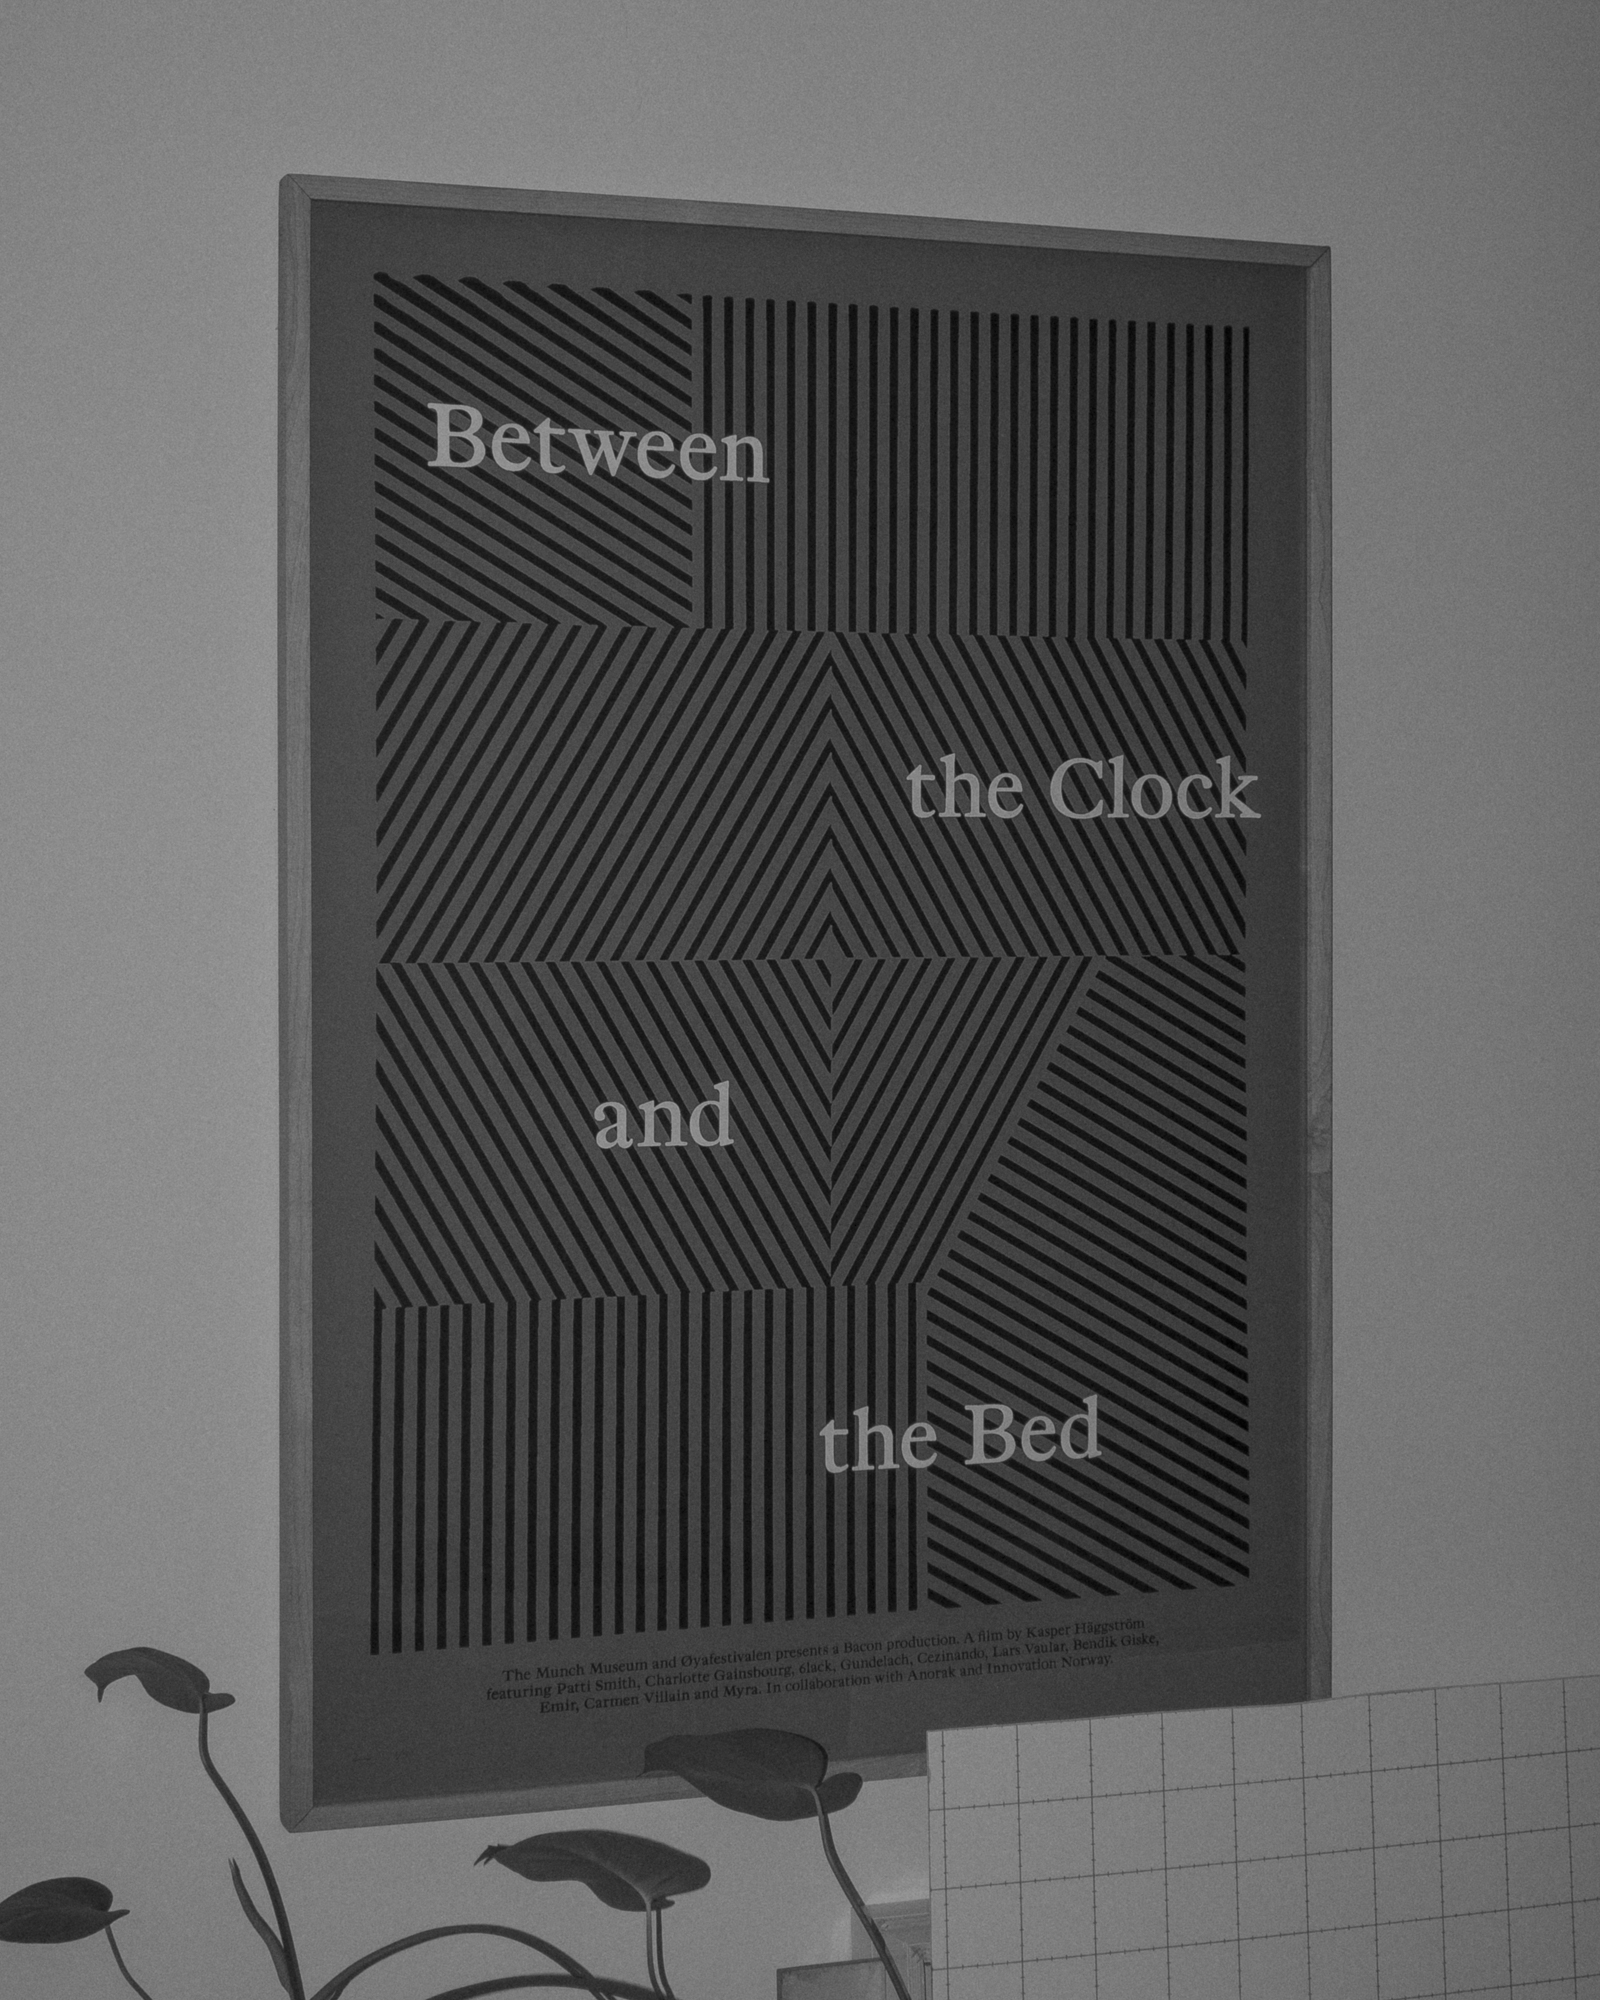 Between the Clock and the Bed (poster)